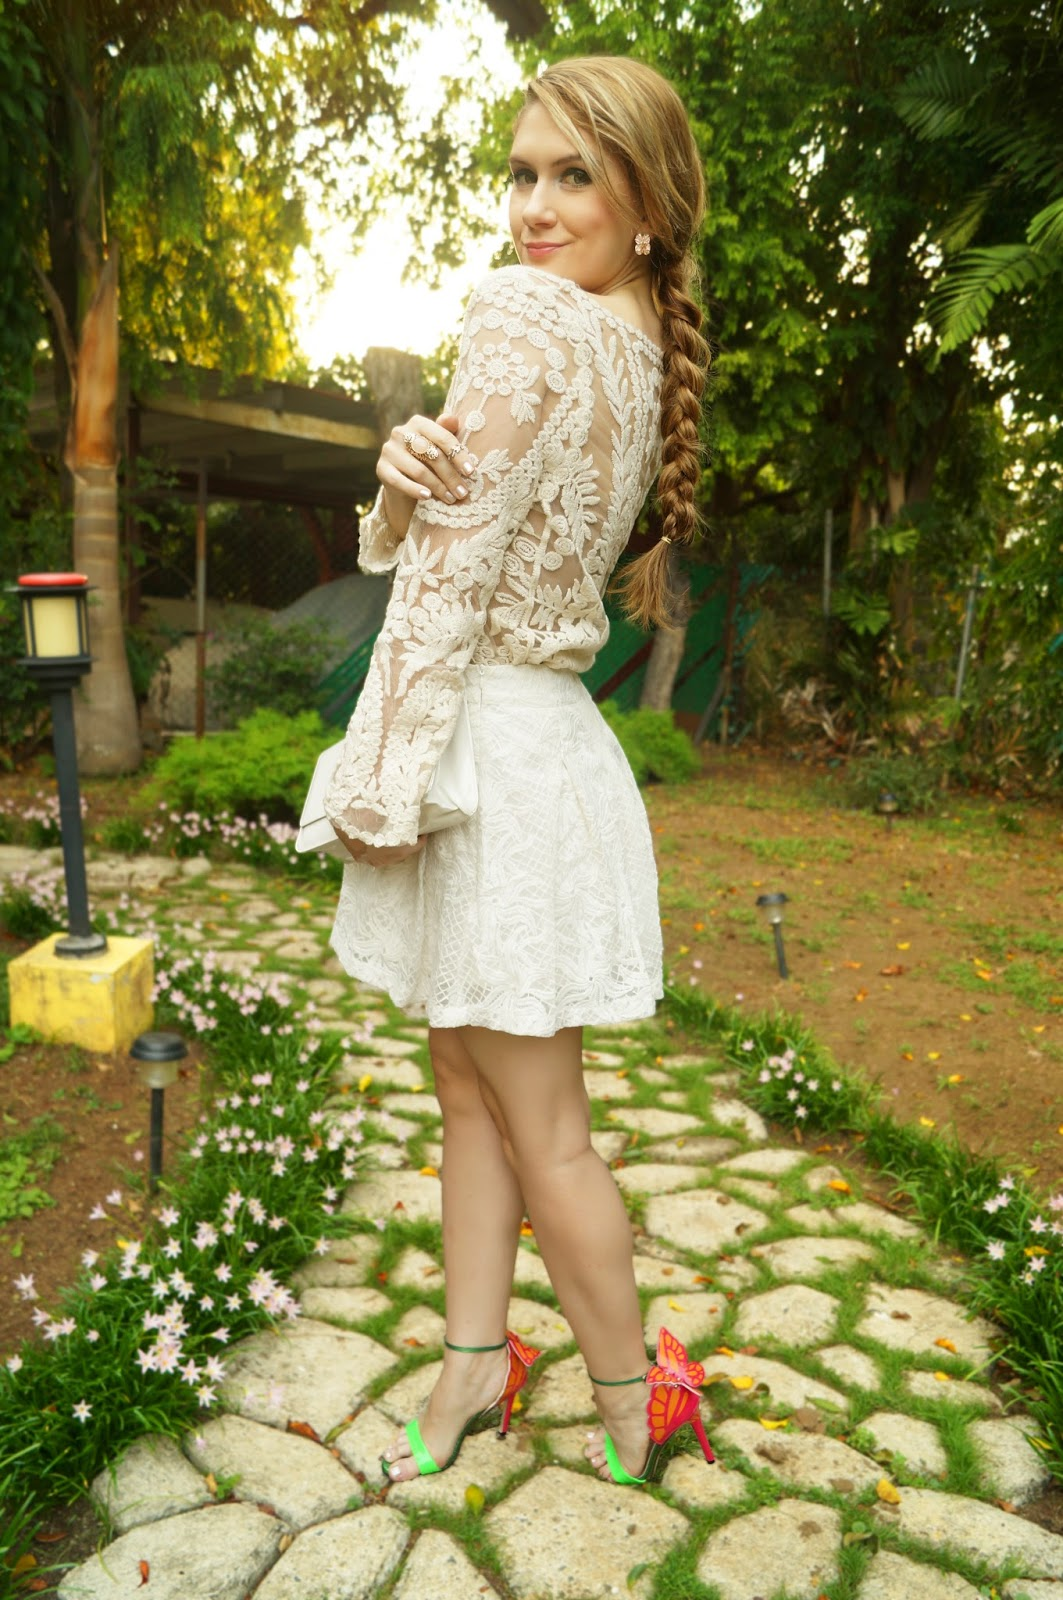 Spring Outfit with white lace. Look at those butterfly heels!